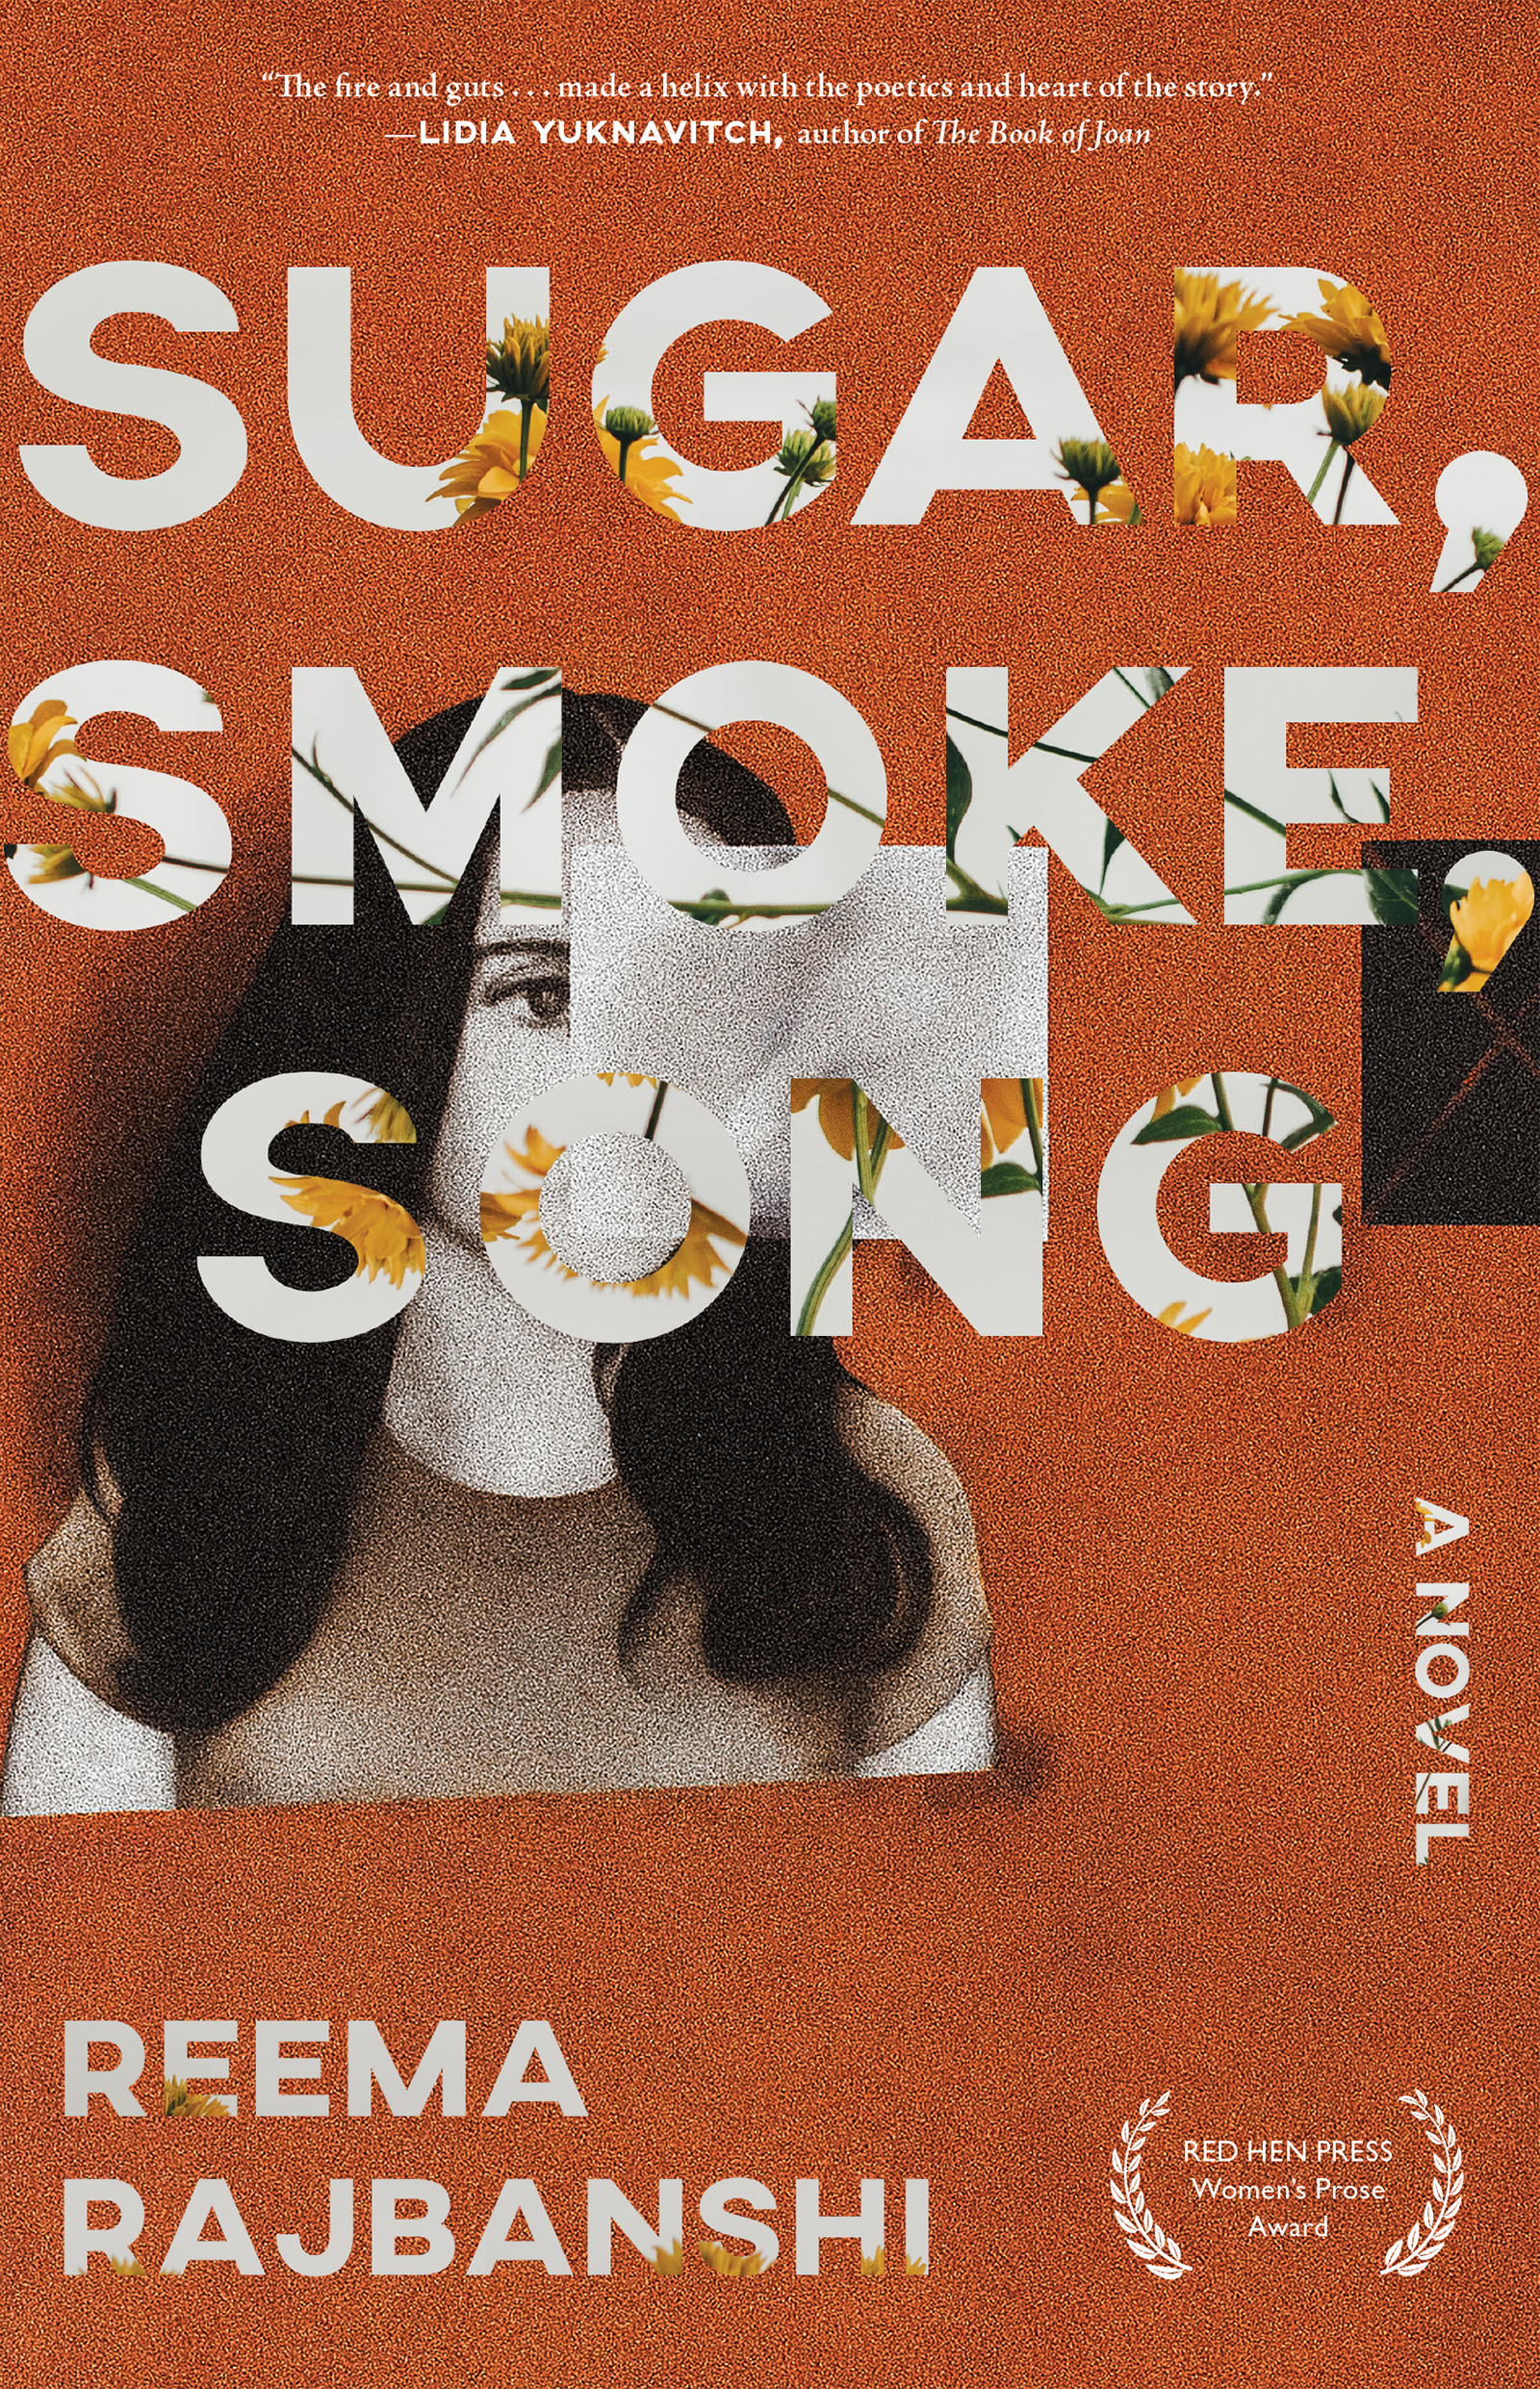 An orange background with an image of a girl with brown hair and white script that reads Sugar, Smoke, Song a novel by Reema Rajbanshi.